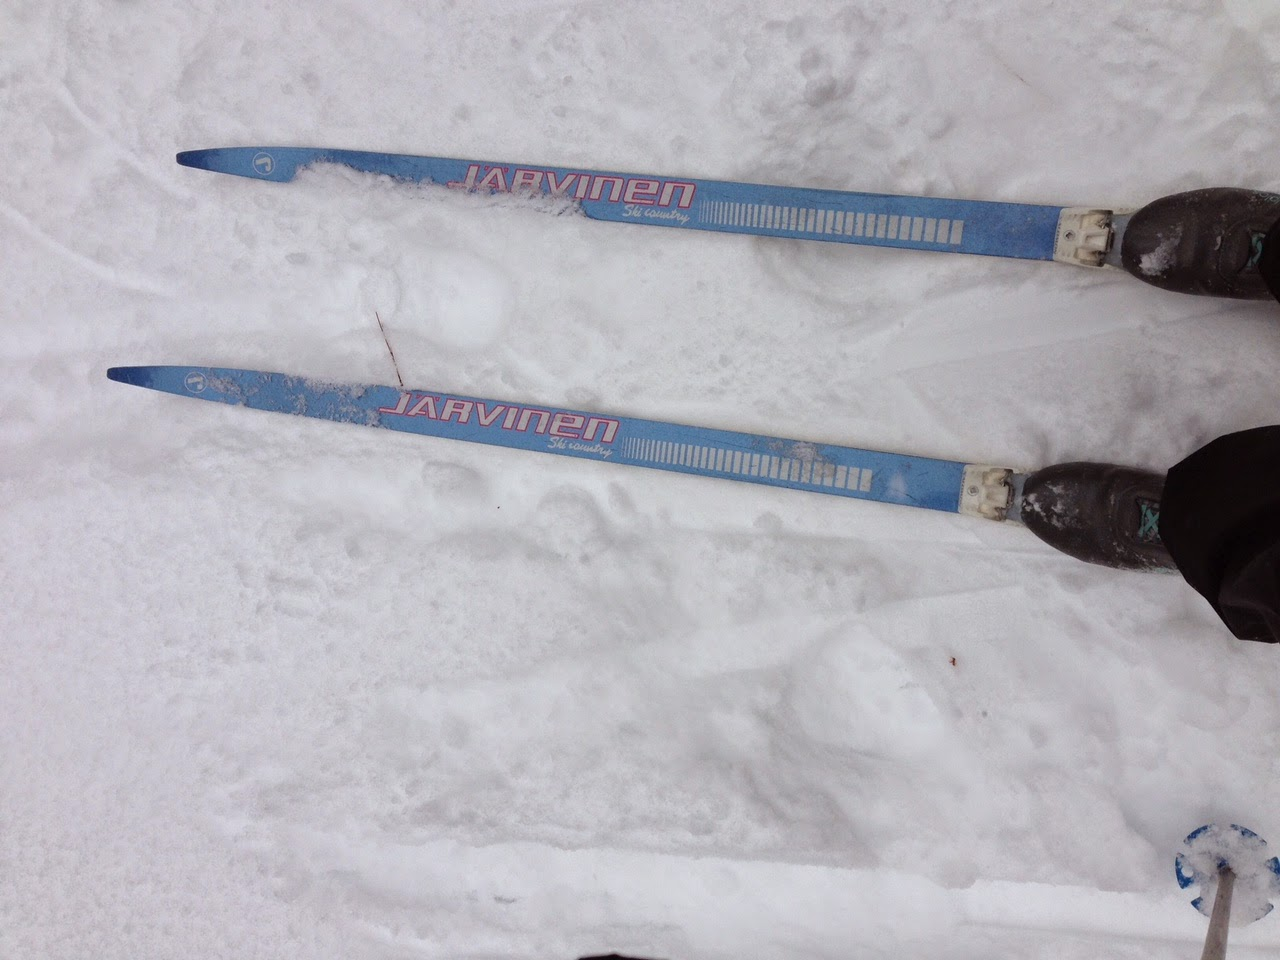 image of cross country skis